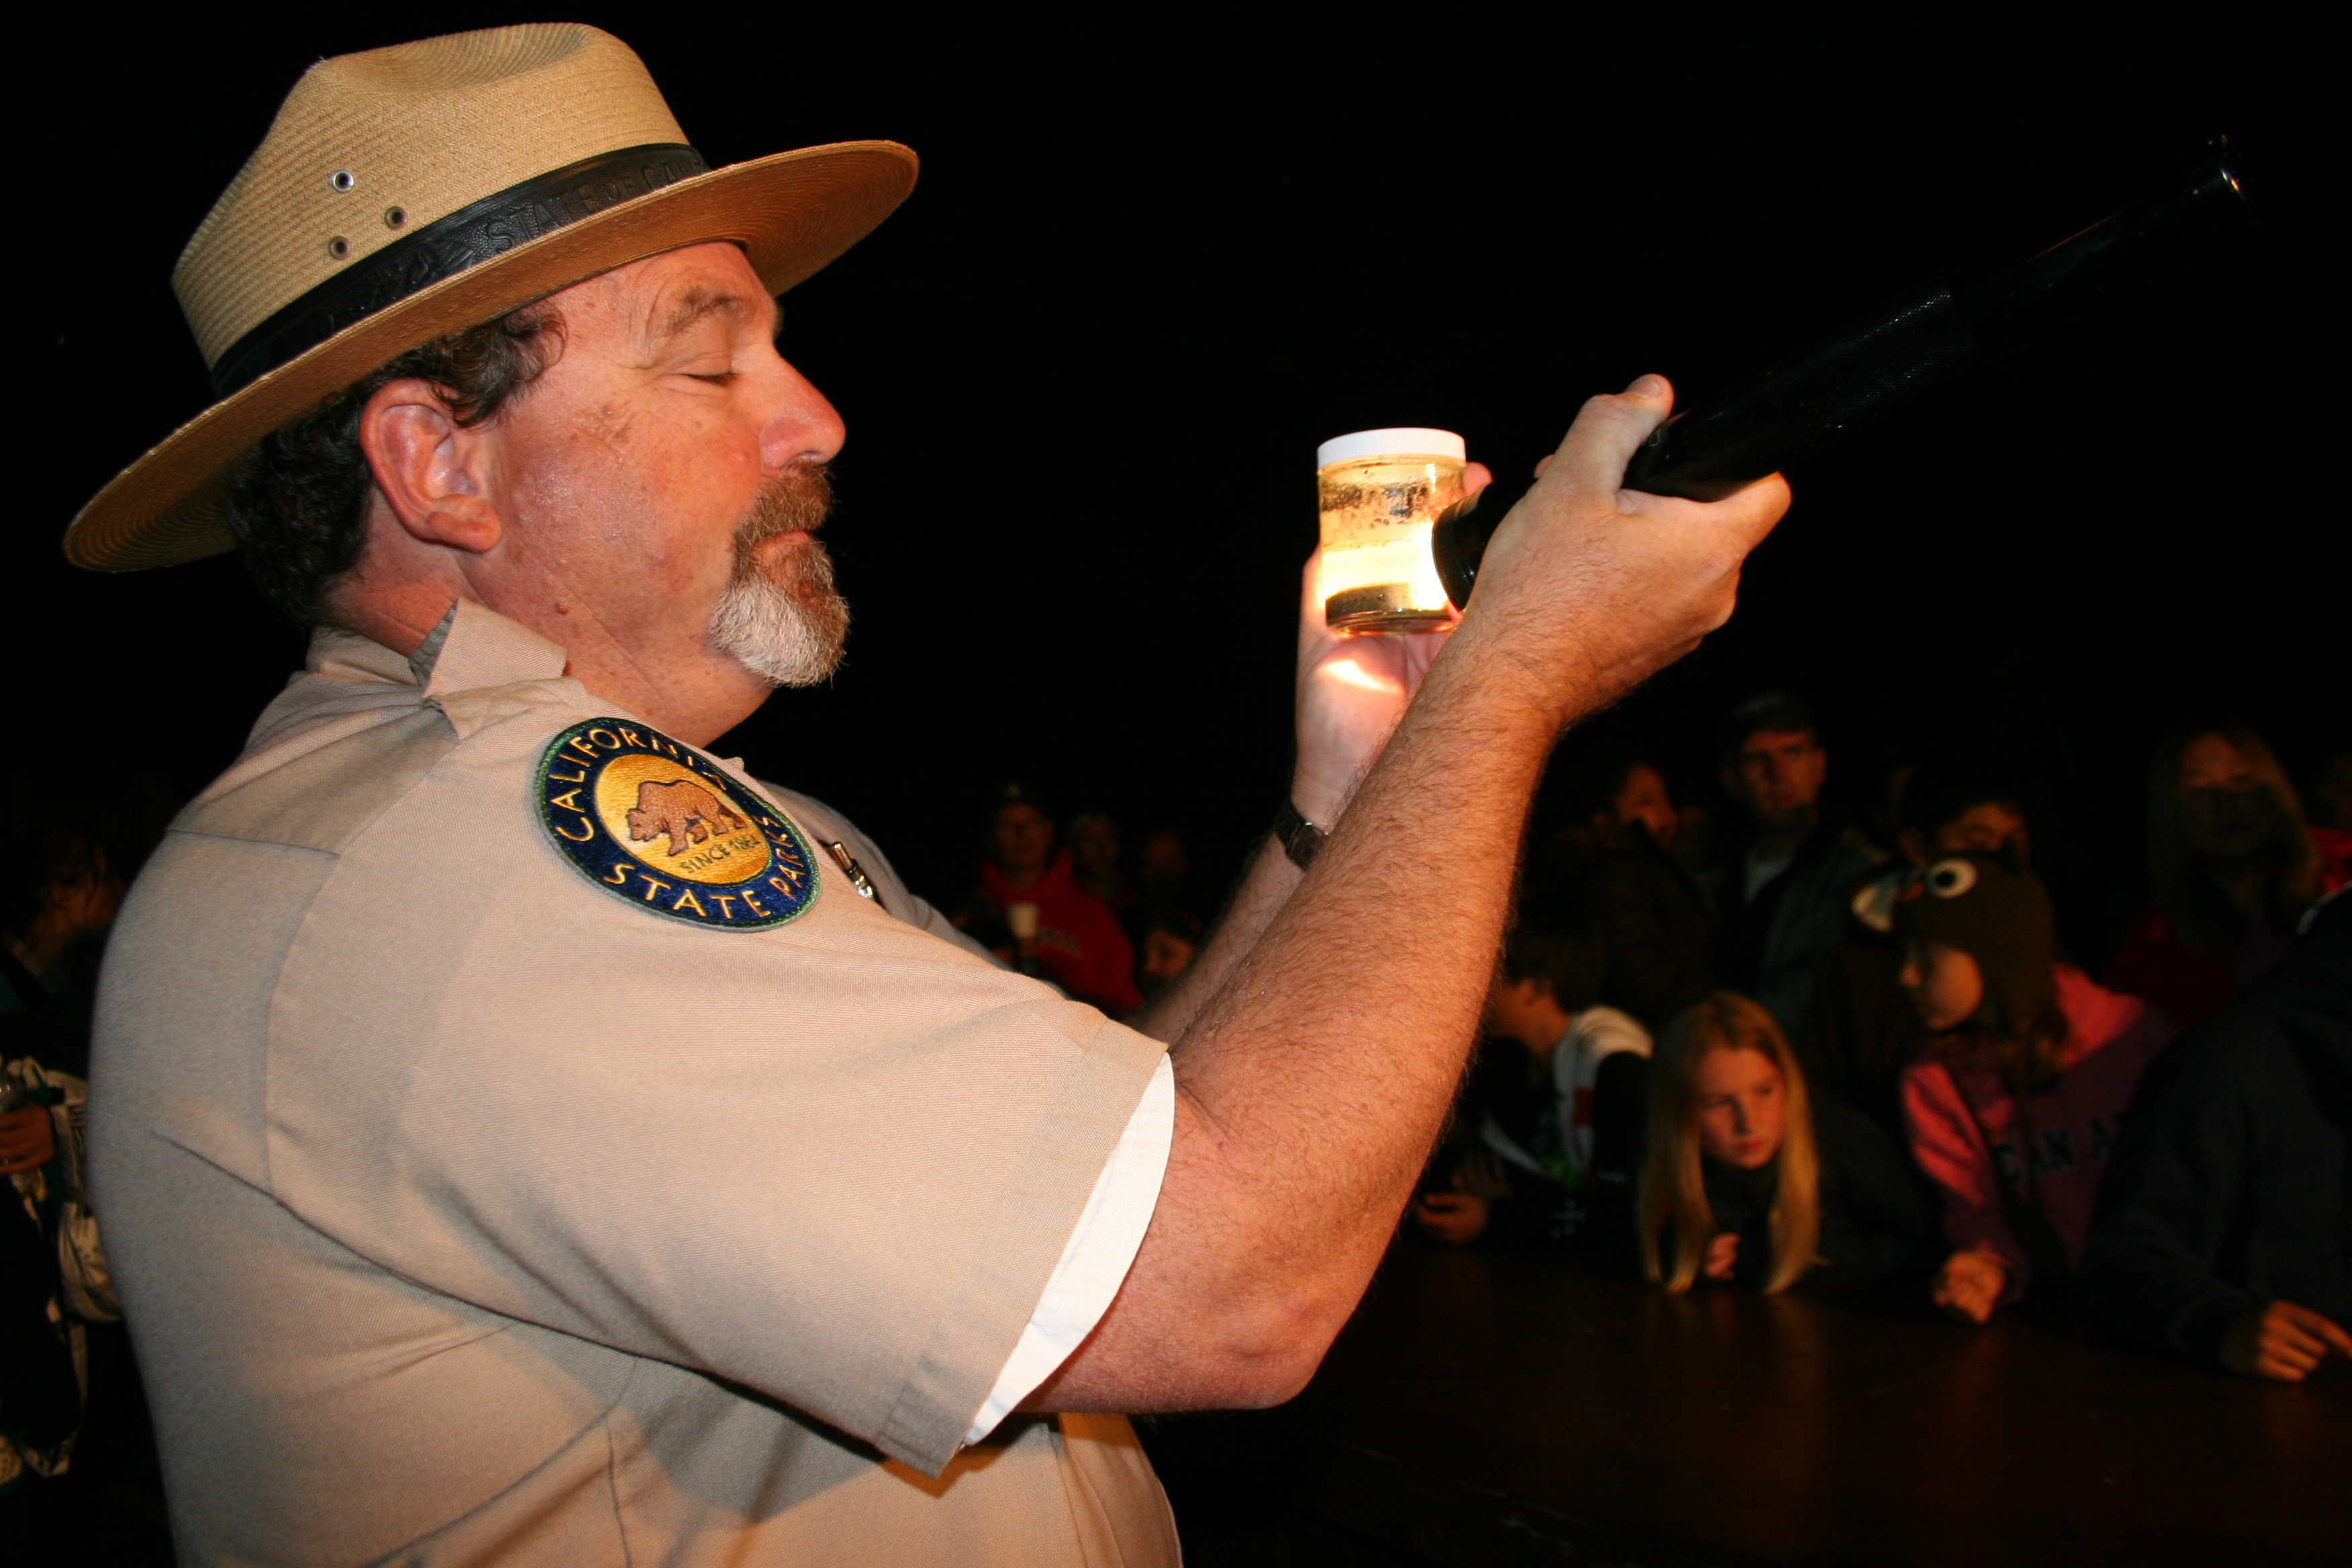 Park Ranger Jim Serpa talks about the grunion life cycle during last year's Grunion Night presentation. Photo: Andrea Swayne